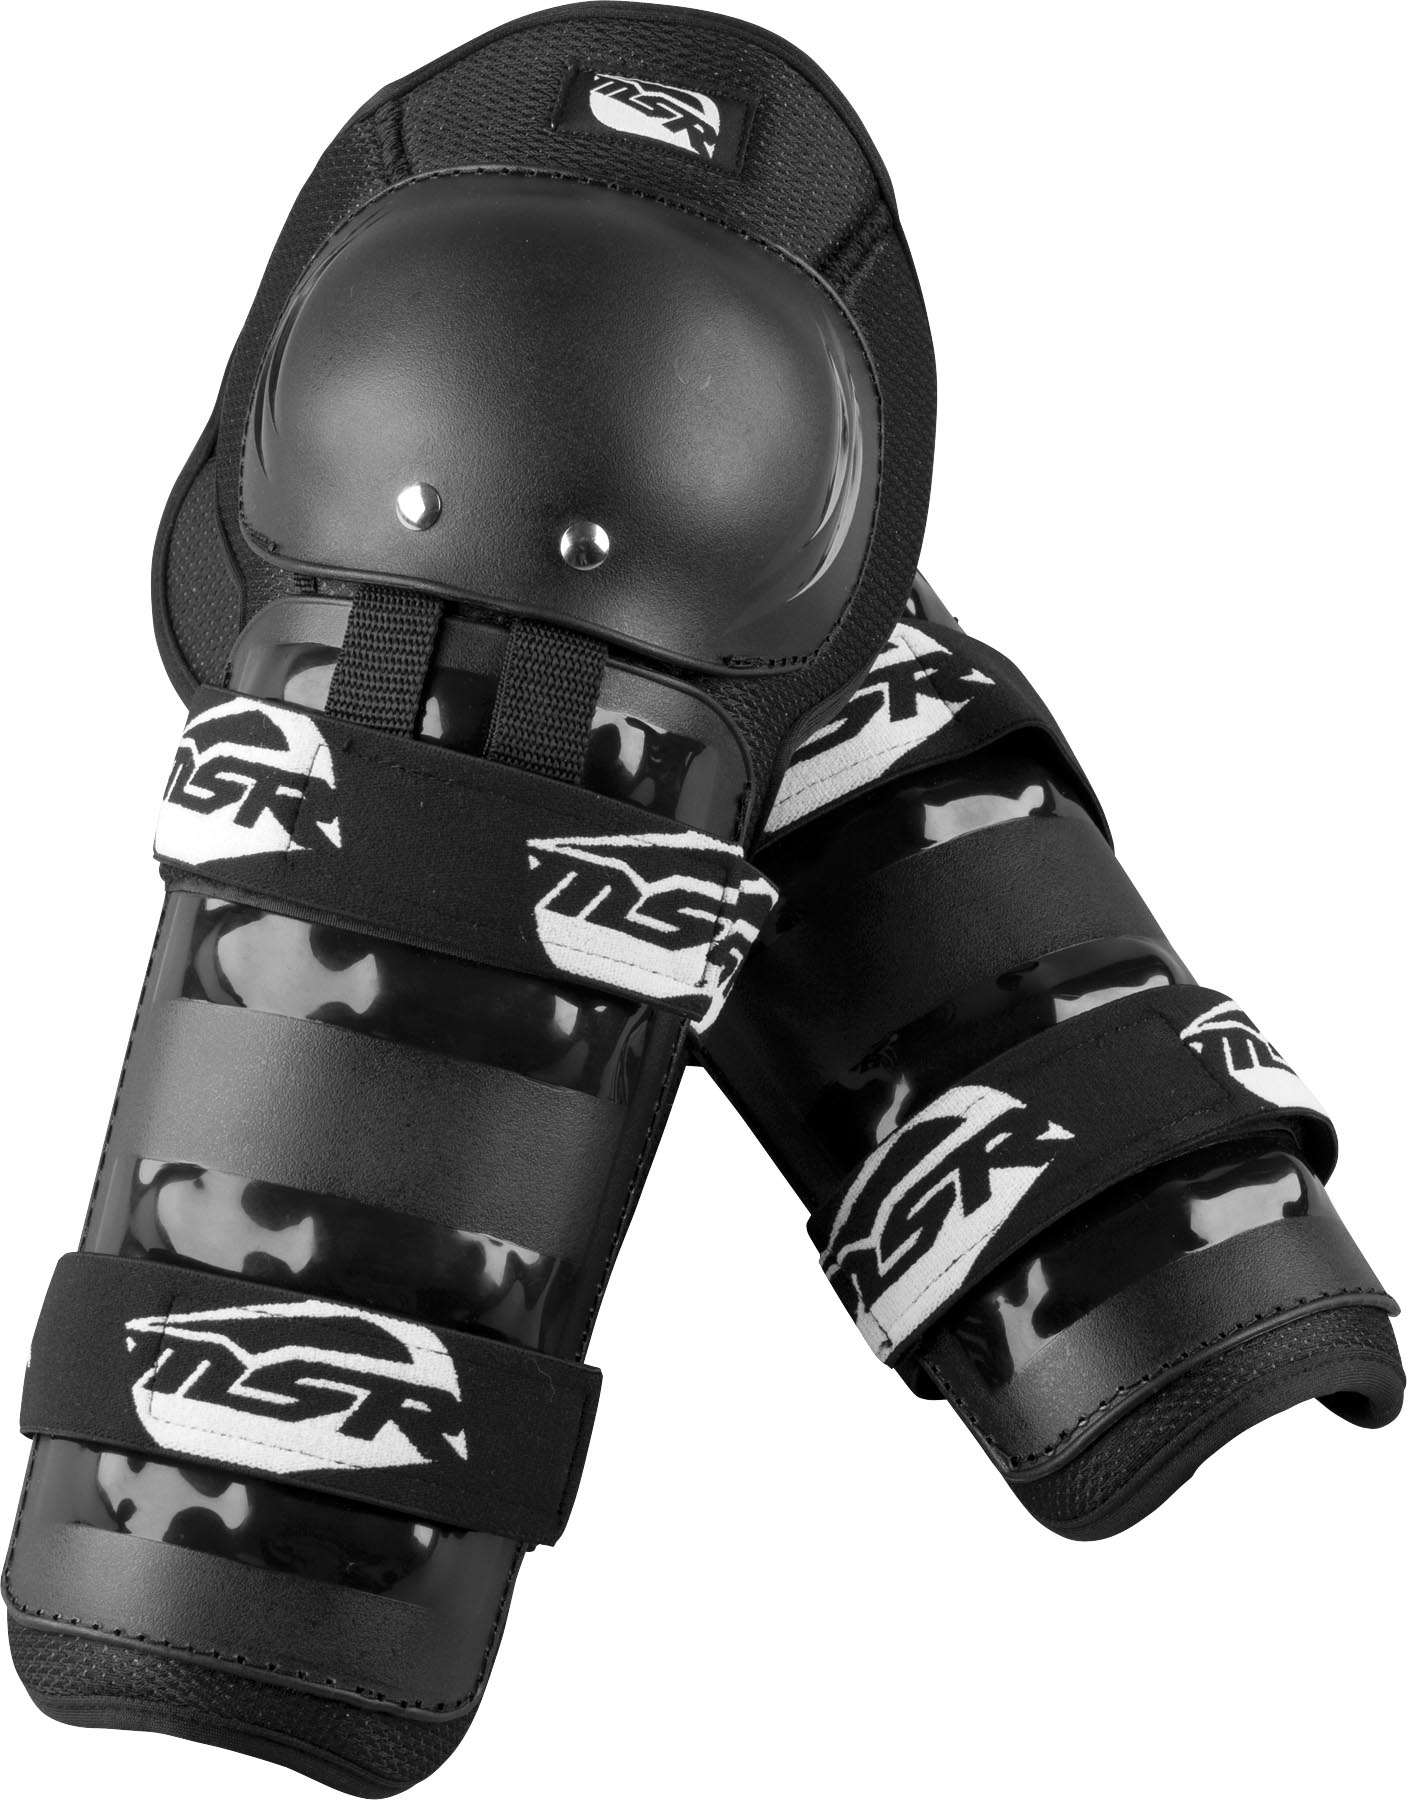 Gravity Knee/Shin Guard